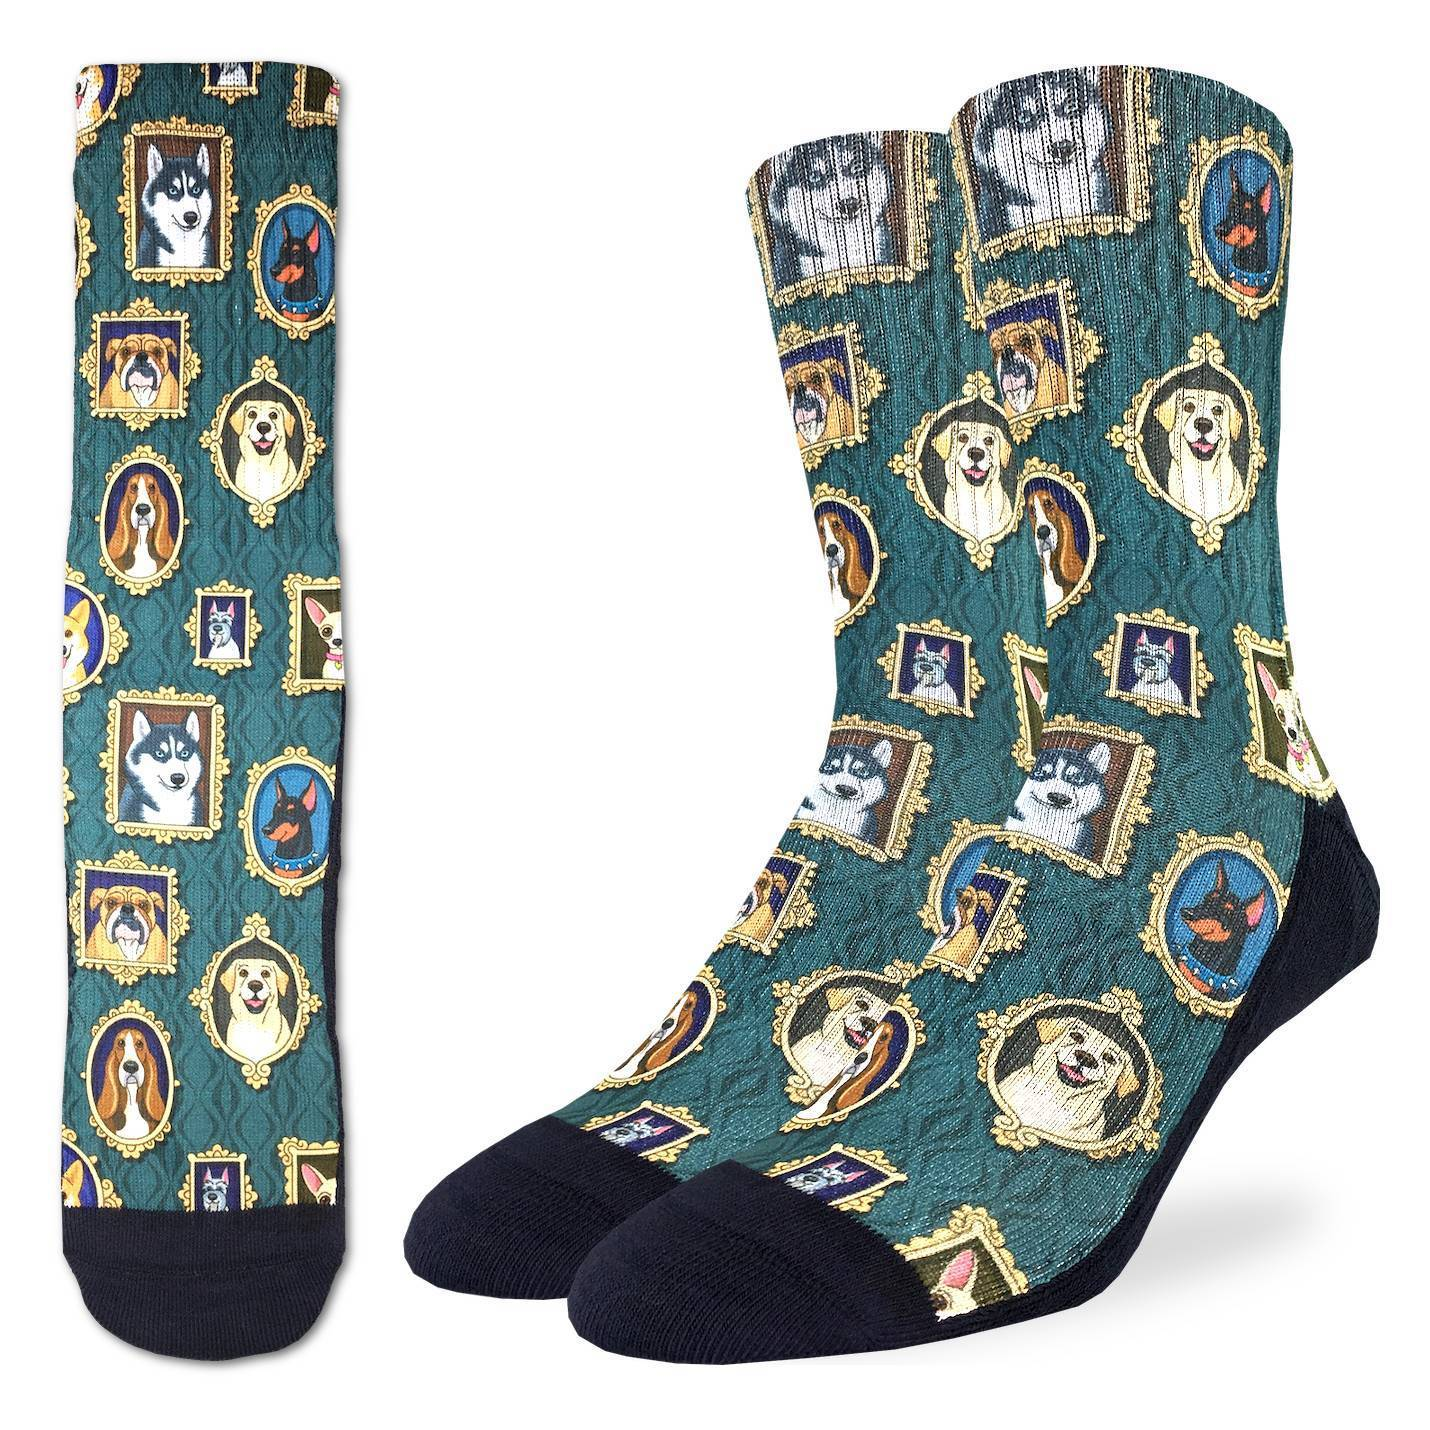 Men's Prized Dogs Socks - Good Luck Sock